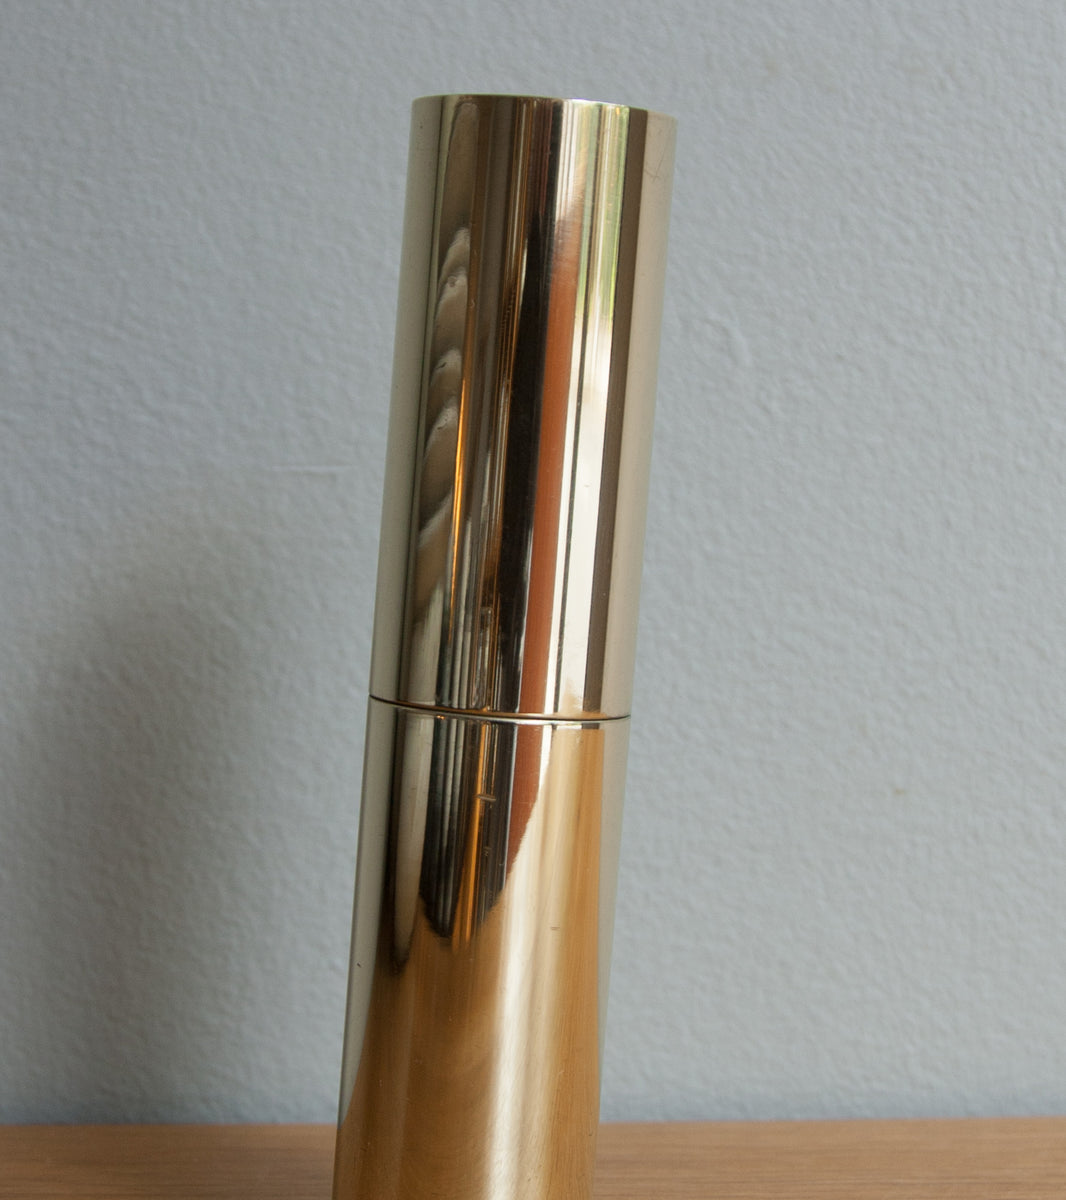 Hand Crafted Italic Mill - Polished Brass Michael Anastassiades & Carl Auböck  - Image 7